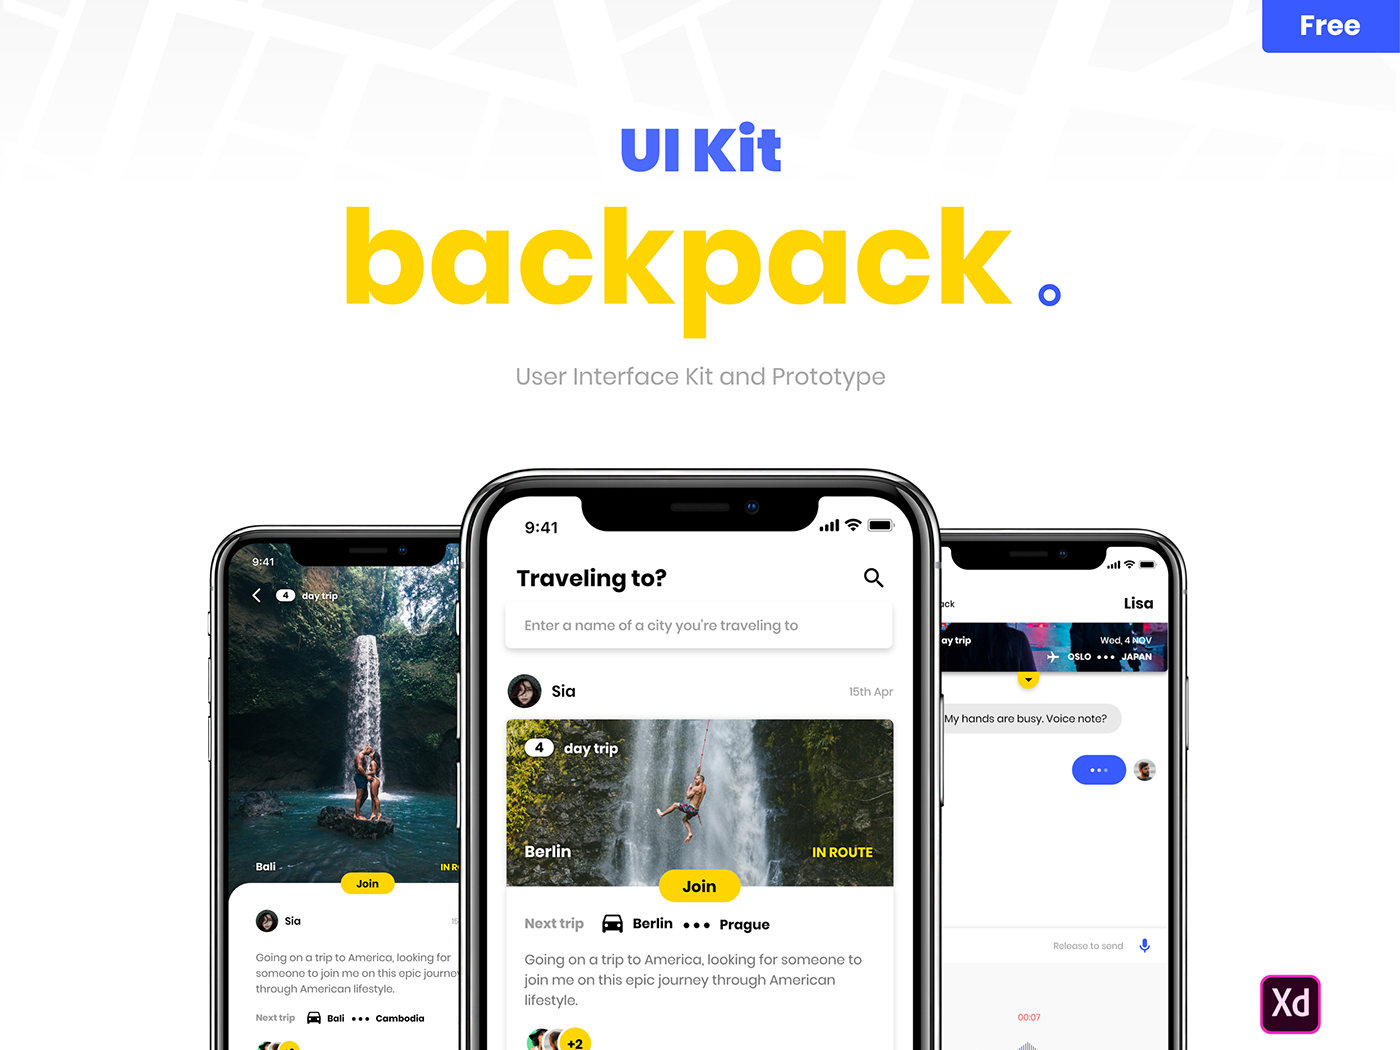 Backpack - UI Kit Free for Adobe XD | ui | Ui kit, Adobe xd, Ios ui